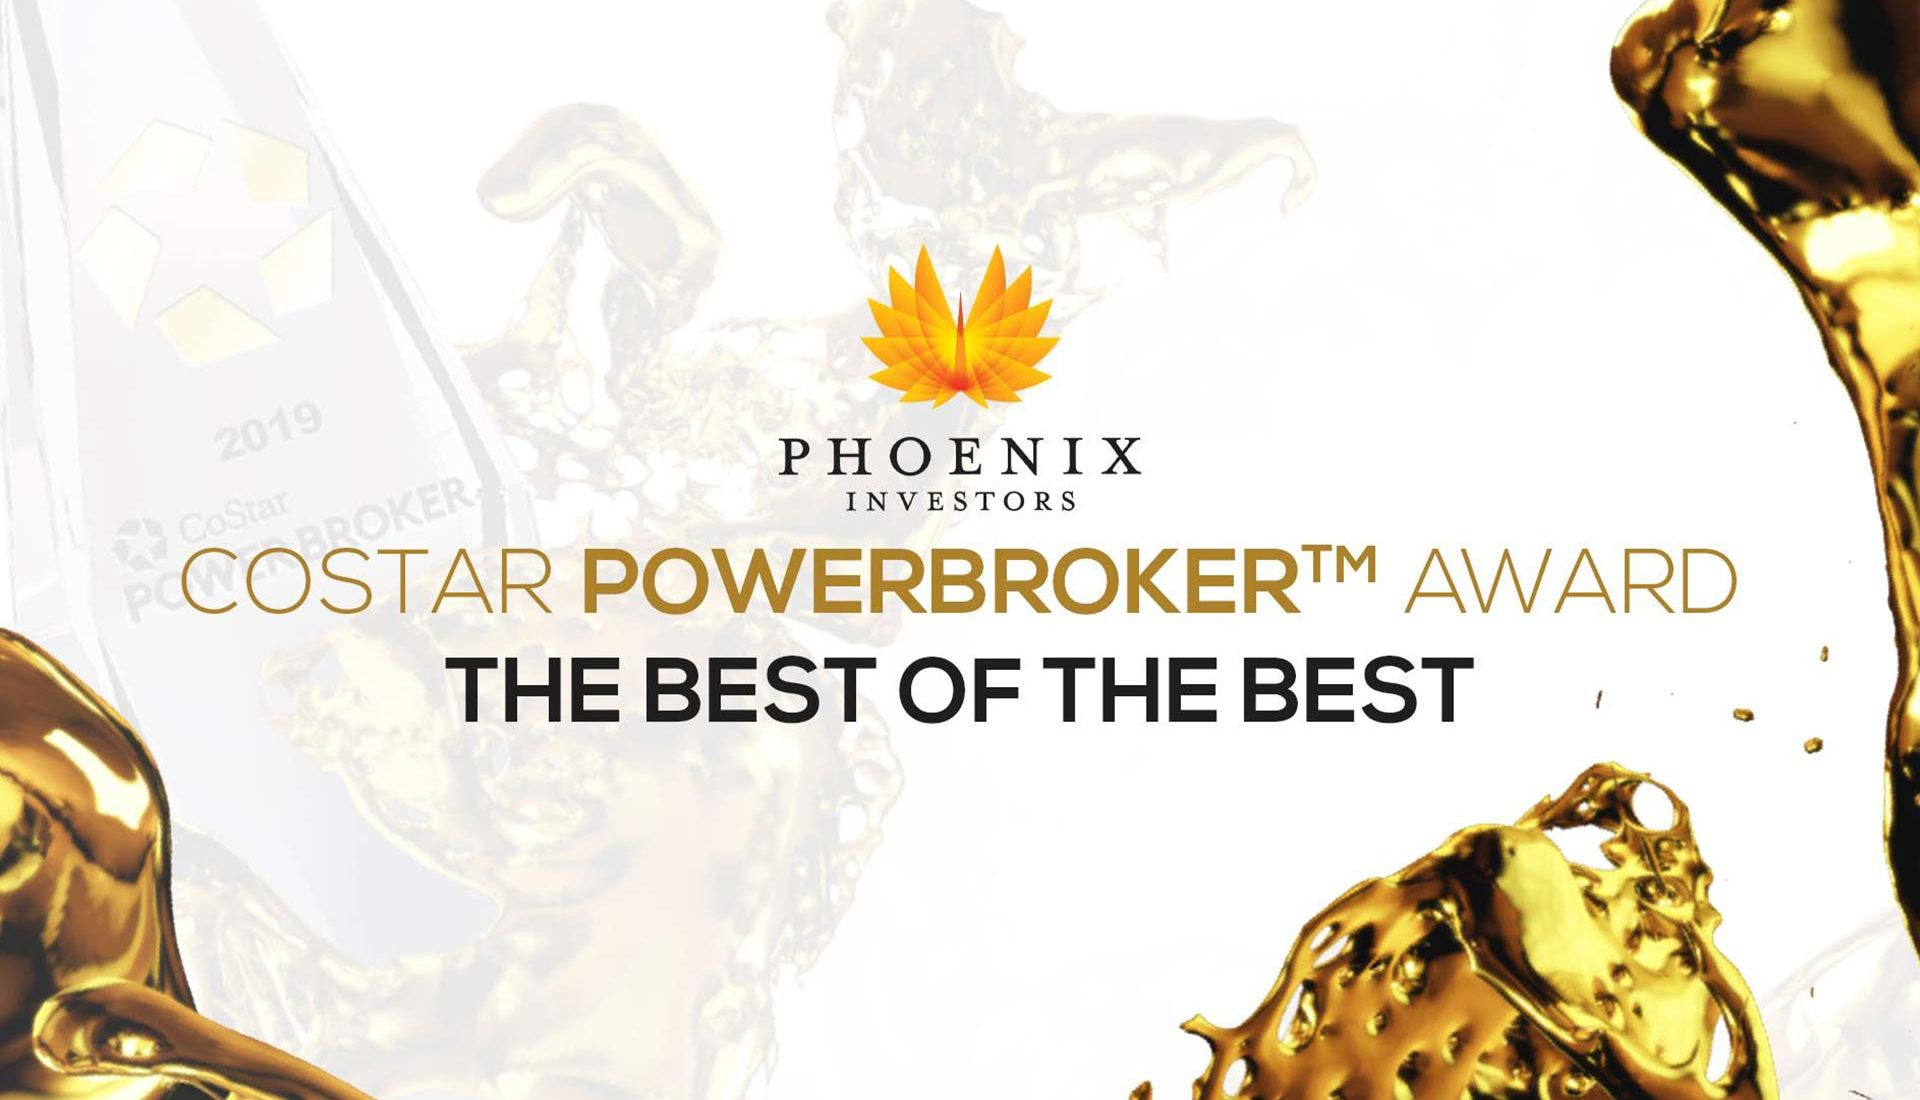 CoStar Powerbroker Award